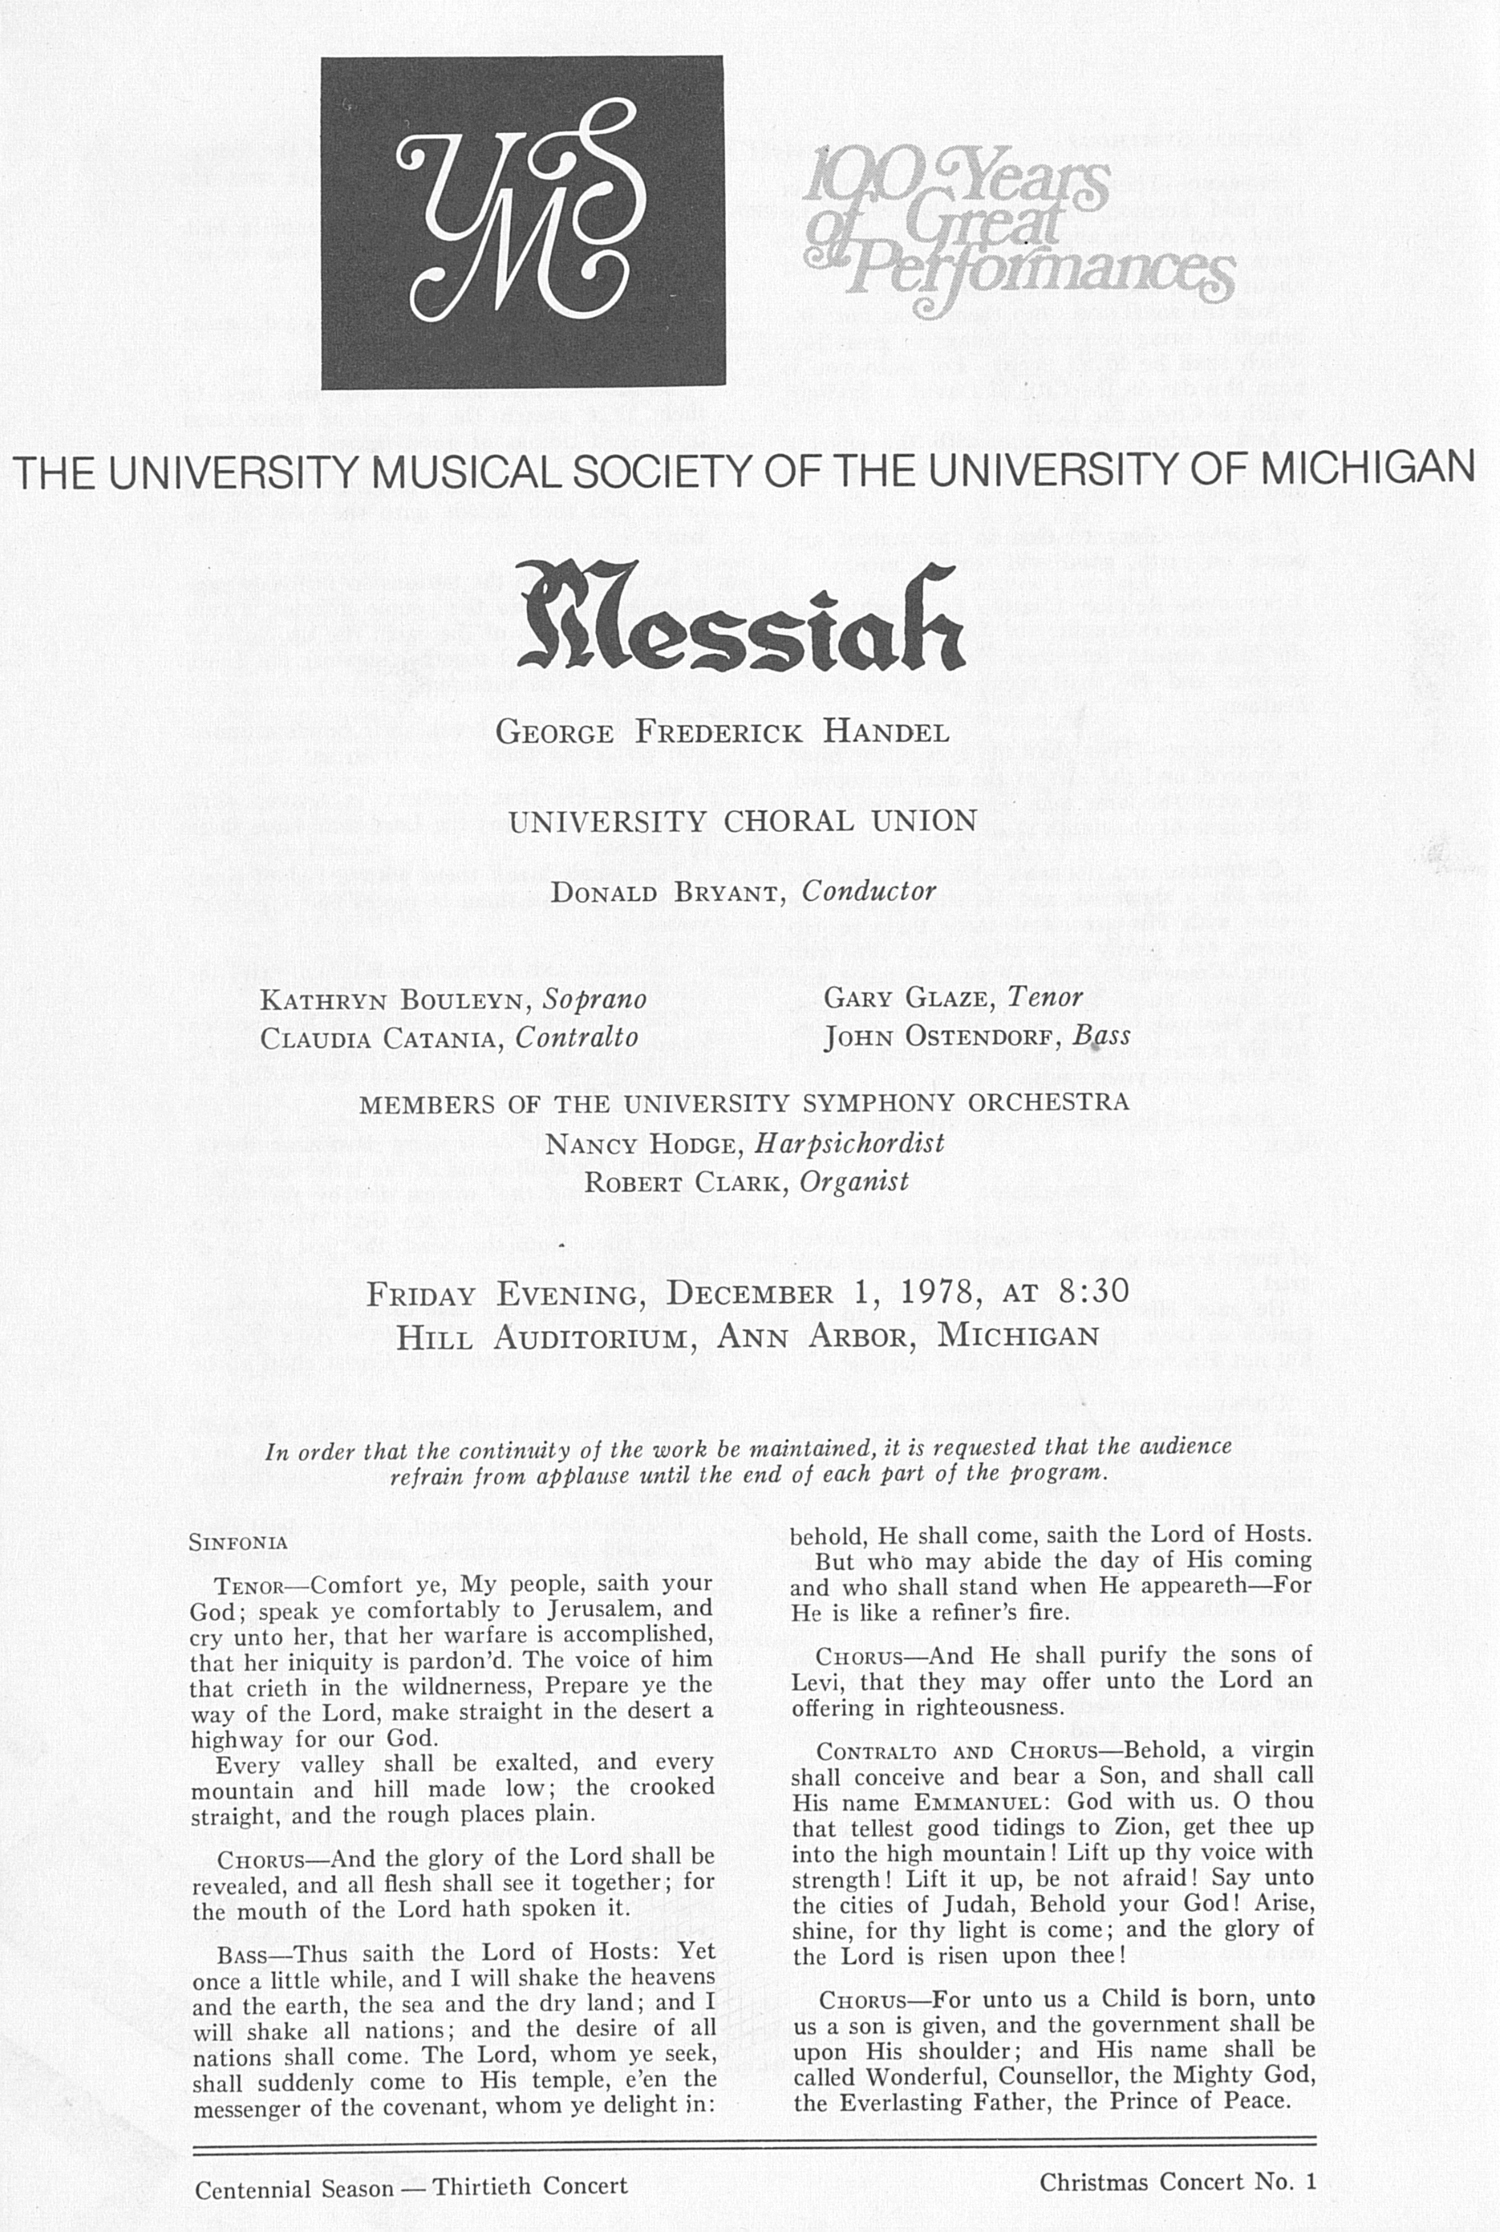 UMS Concert Program, December 1, 1978: Messiah -- George Frederick Handel image